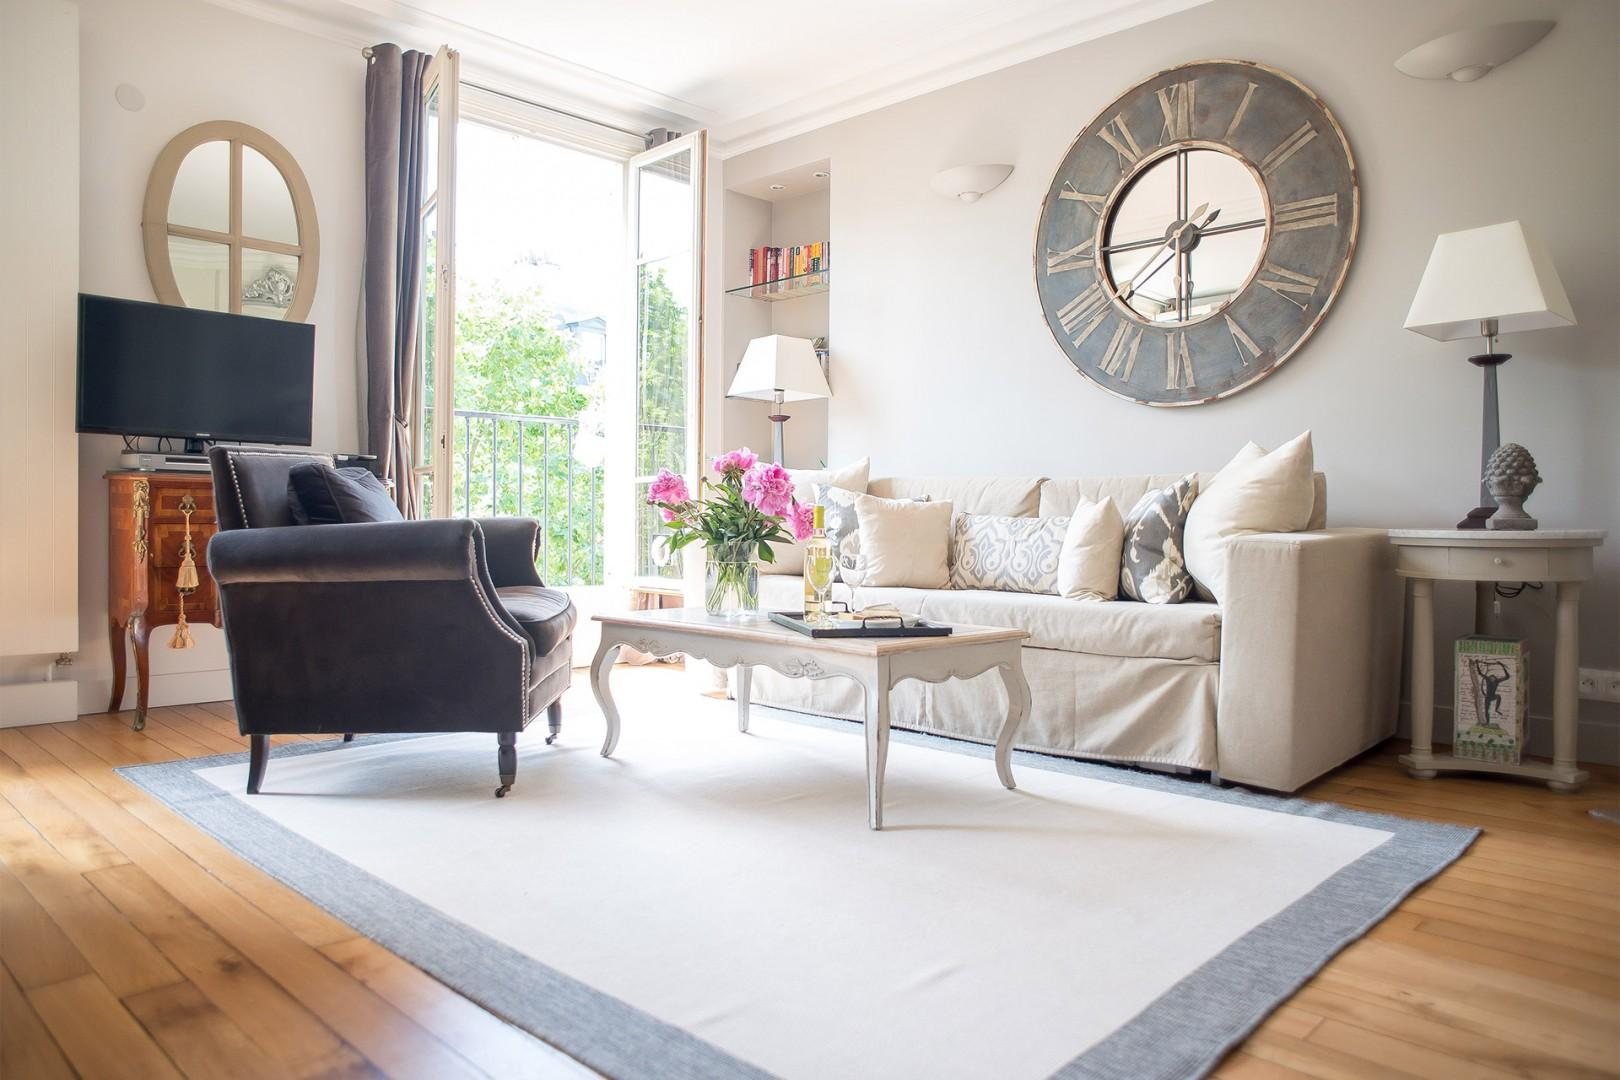 Relax in the bright and comfortable seating area in the living room.